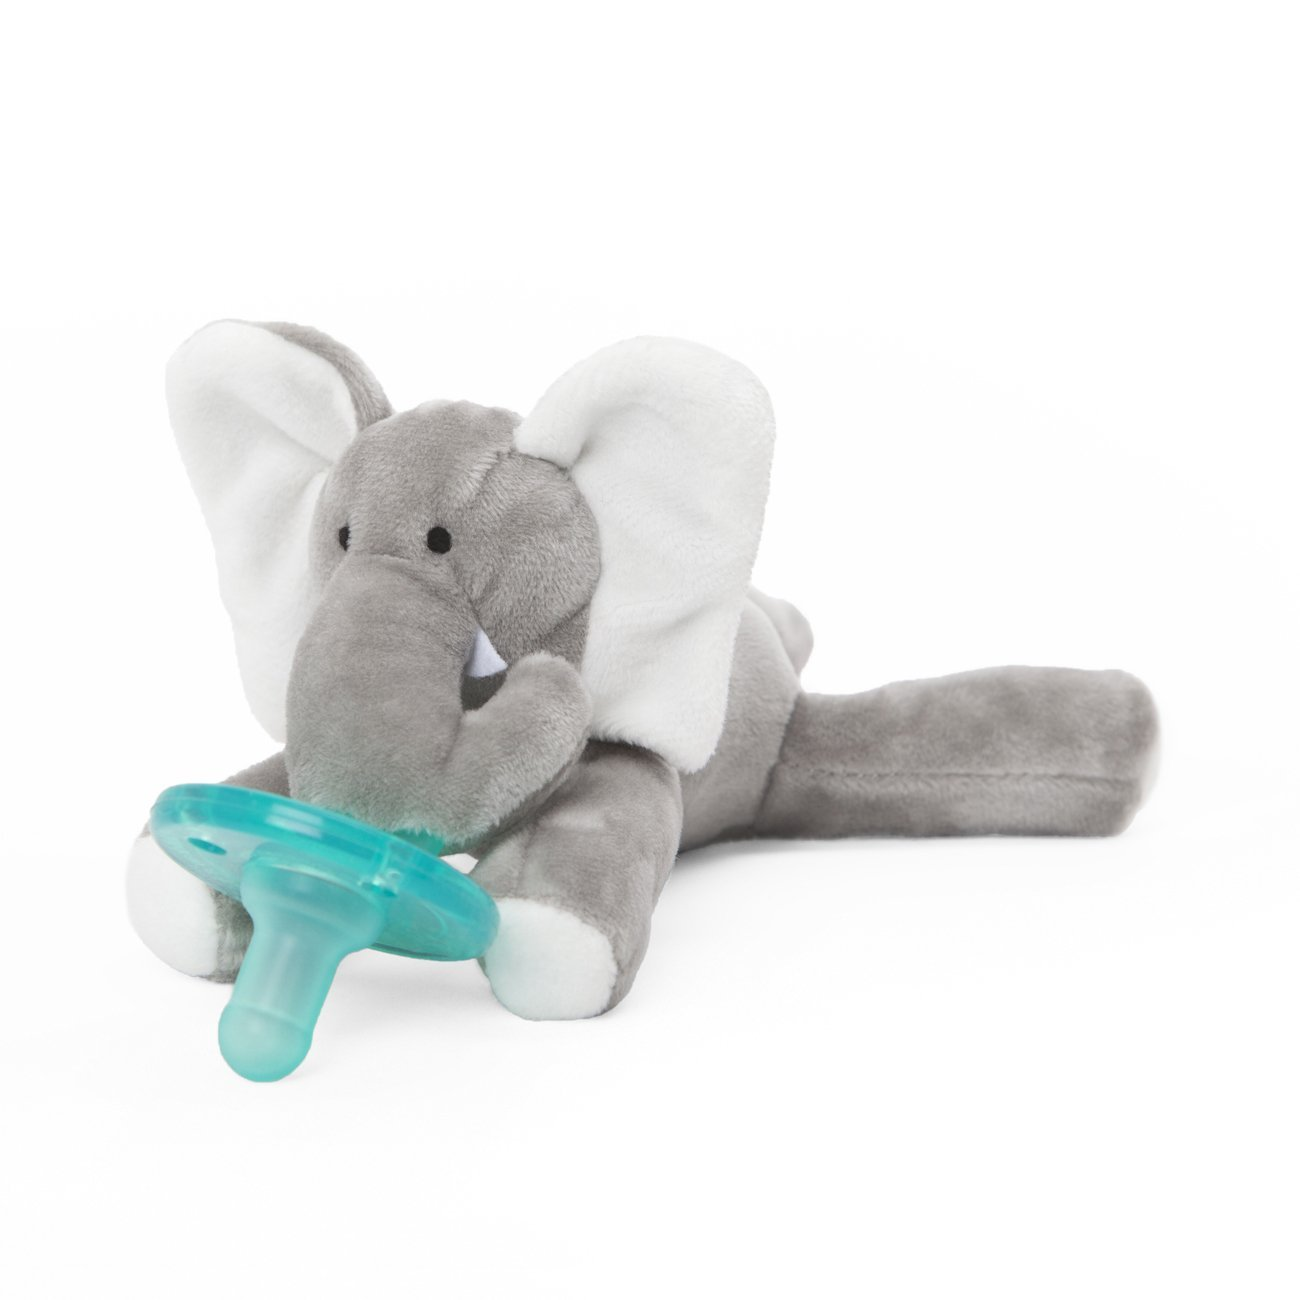 Amazon.com : Mint Green Musical Mobile With Elephants ...